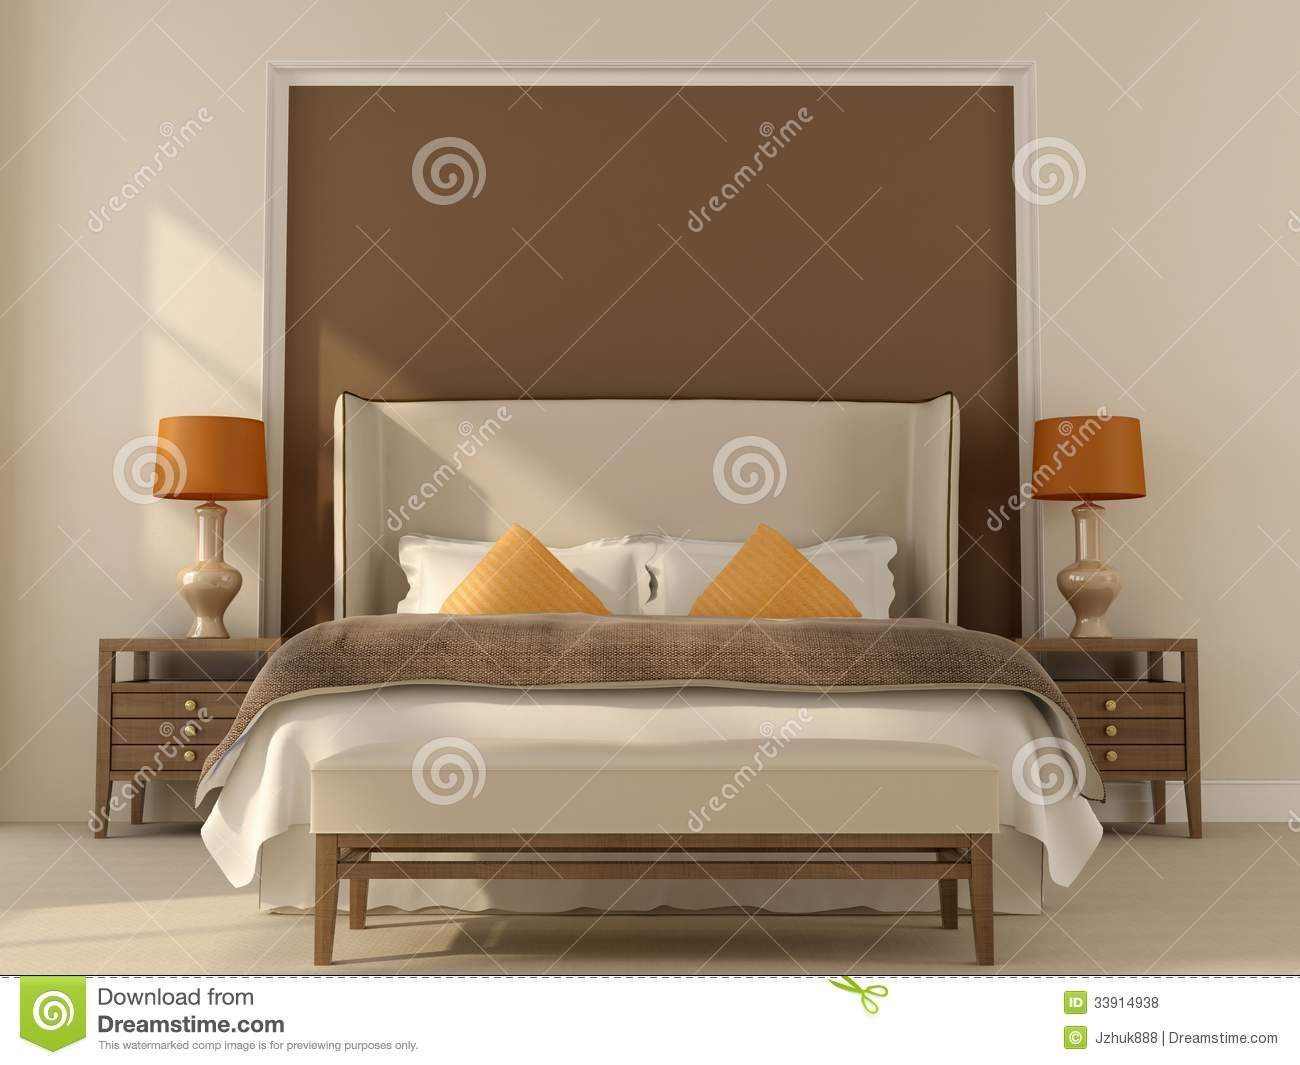 Beige Bedroom With Orange Decor Royalty Free Stock s Image